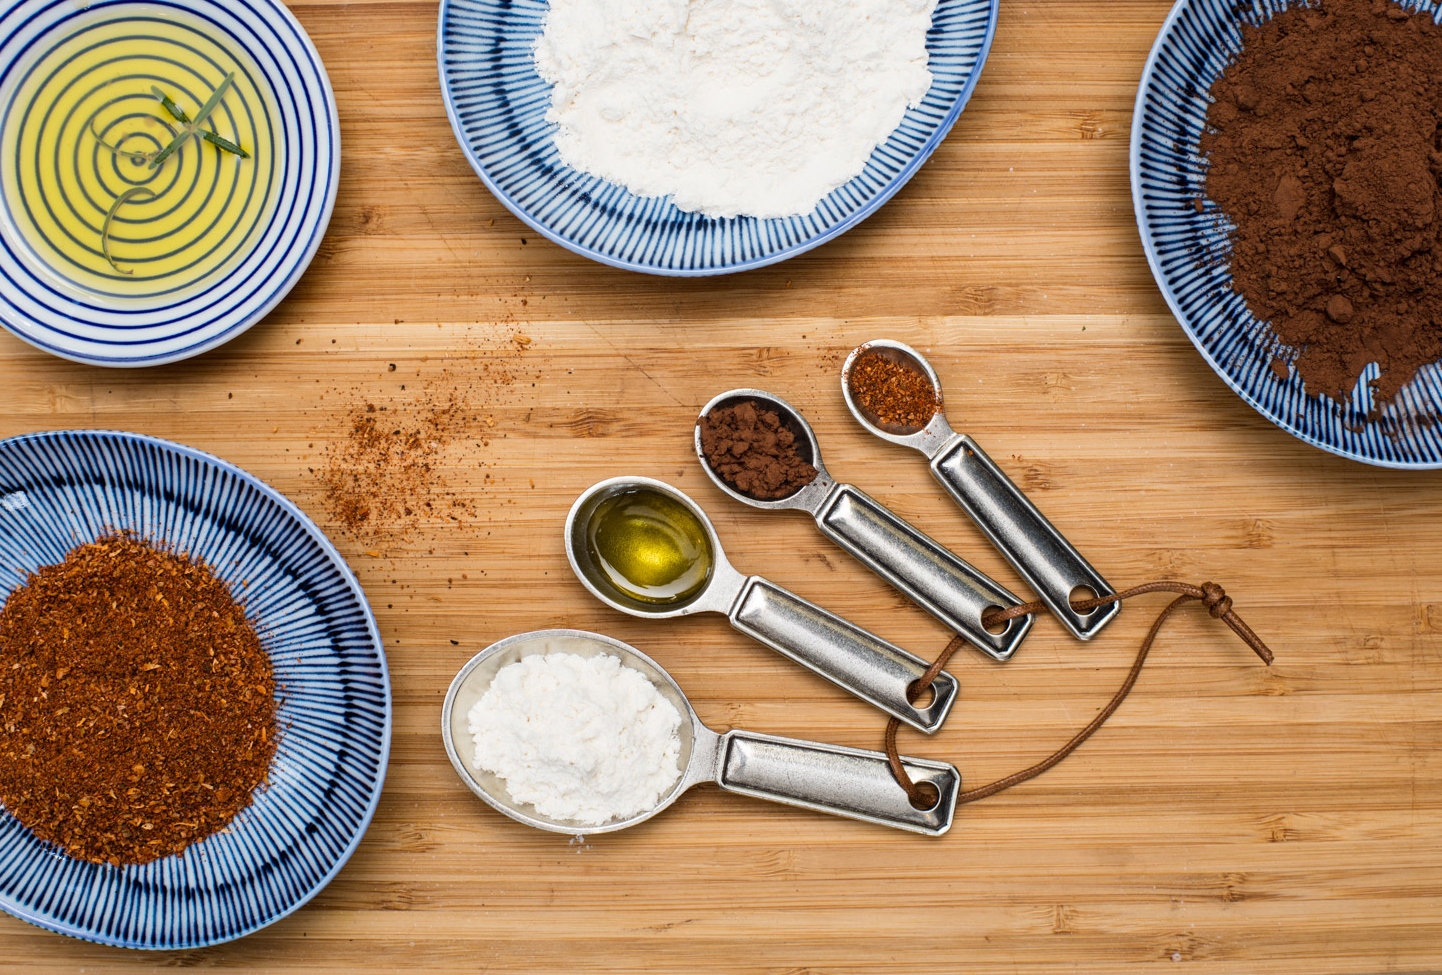 Danforth Pewter dinnerware and kitchen product photography by Reciprocity Studio commercial photographers. Shot in Burlington, Vermont.